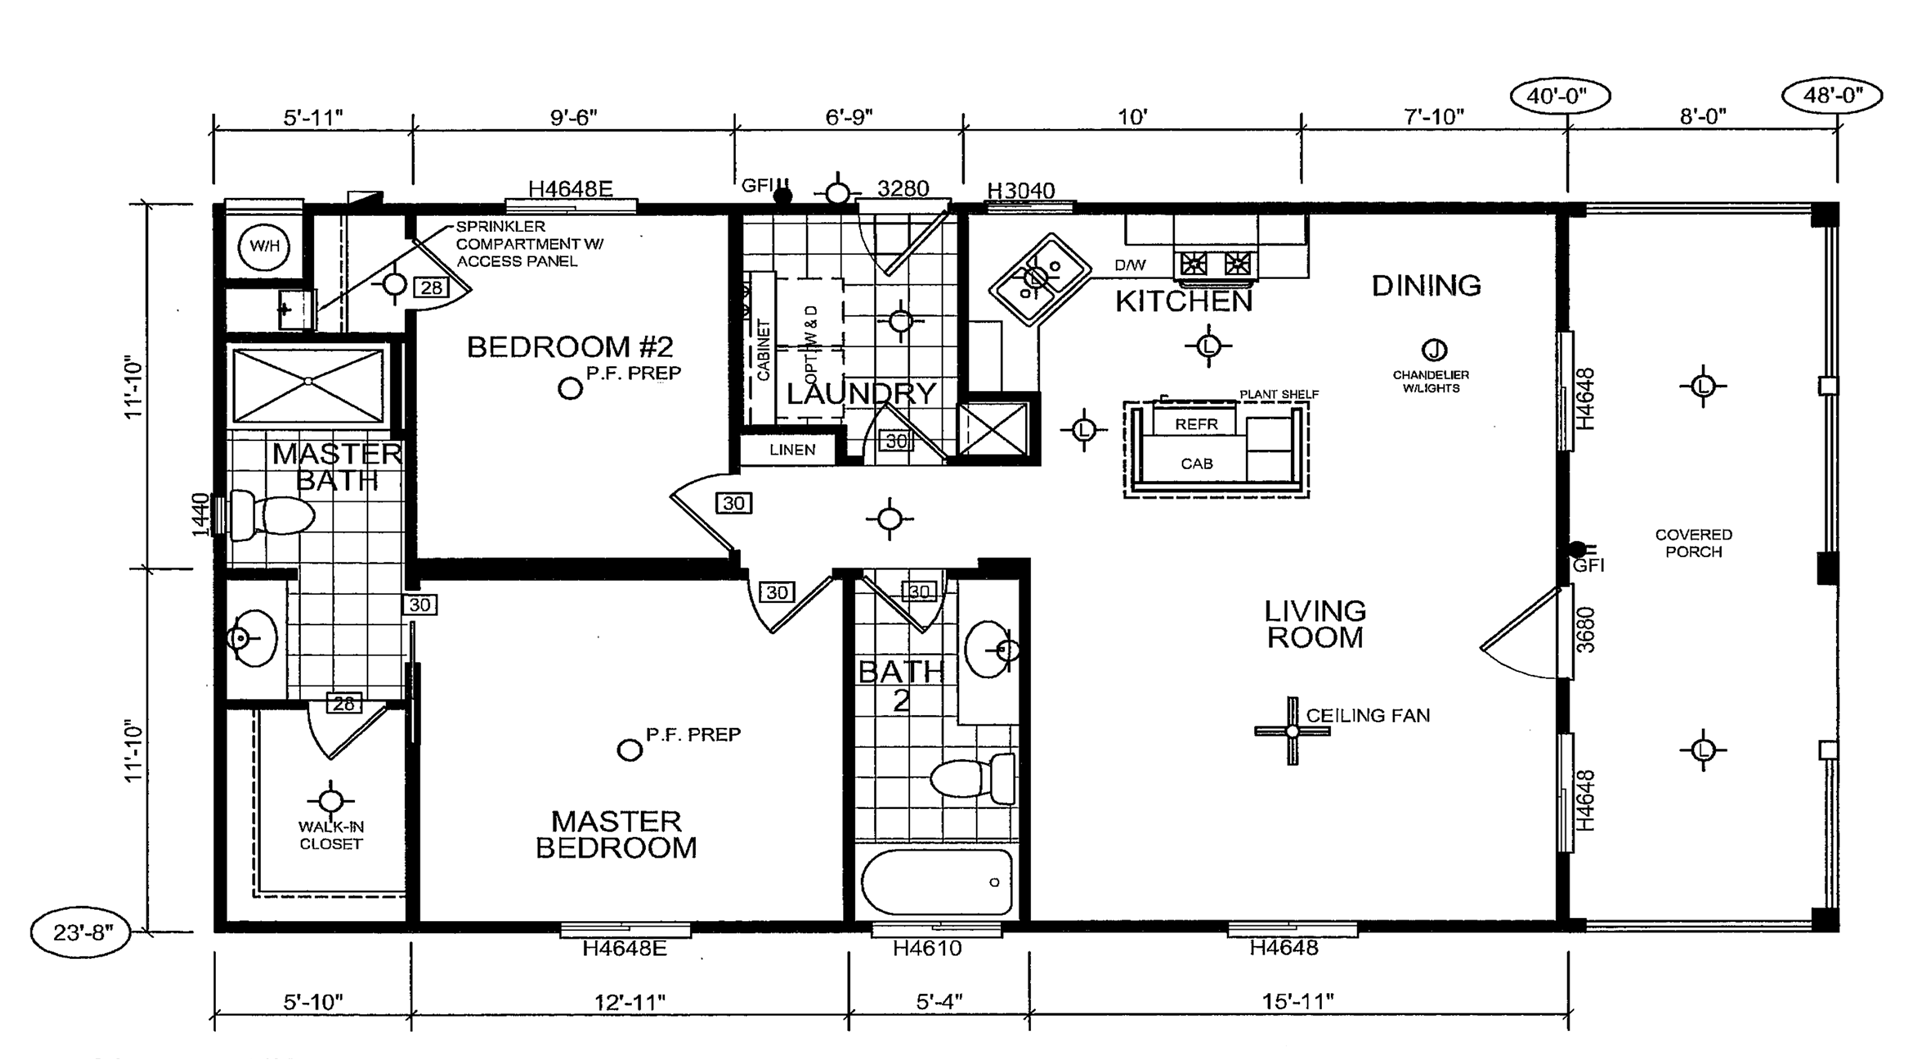 Pacific manufactured homes floor plans for Pacific image home designs ltd